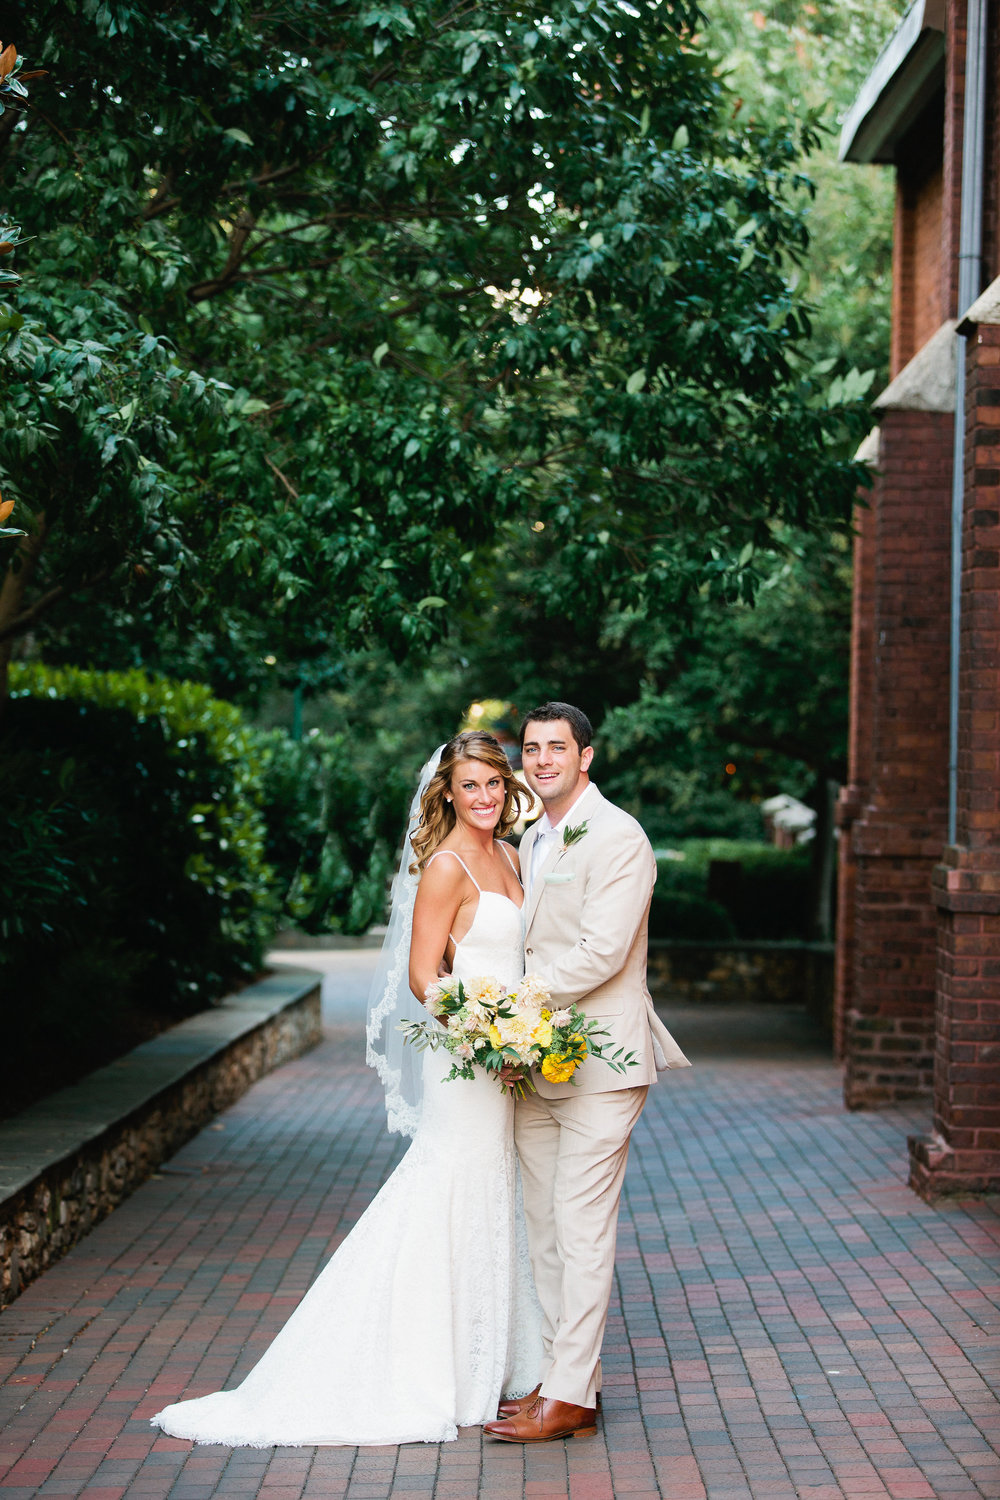 Mint Museum Uptown Wedding - The Graceful Host - Charlotte, NC Wedding Planner